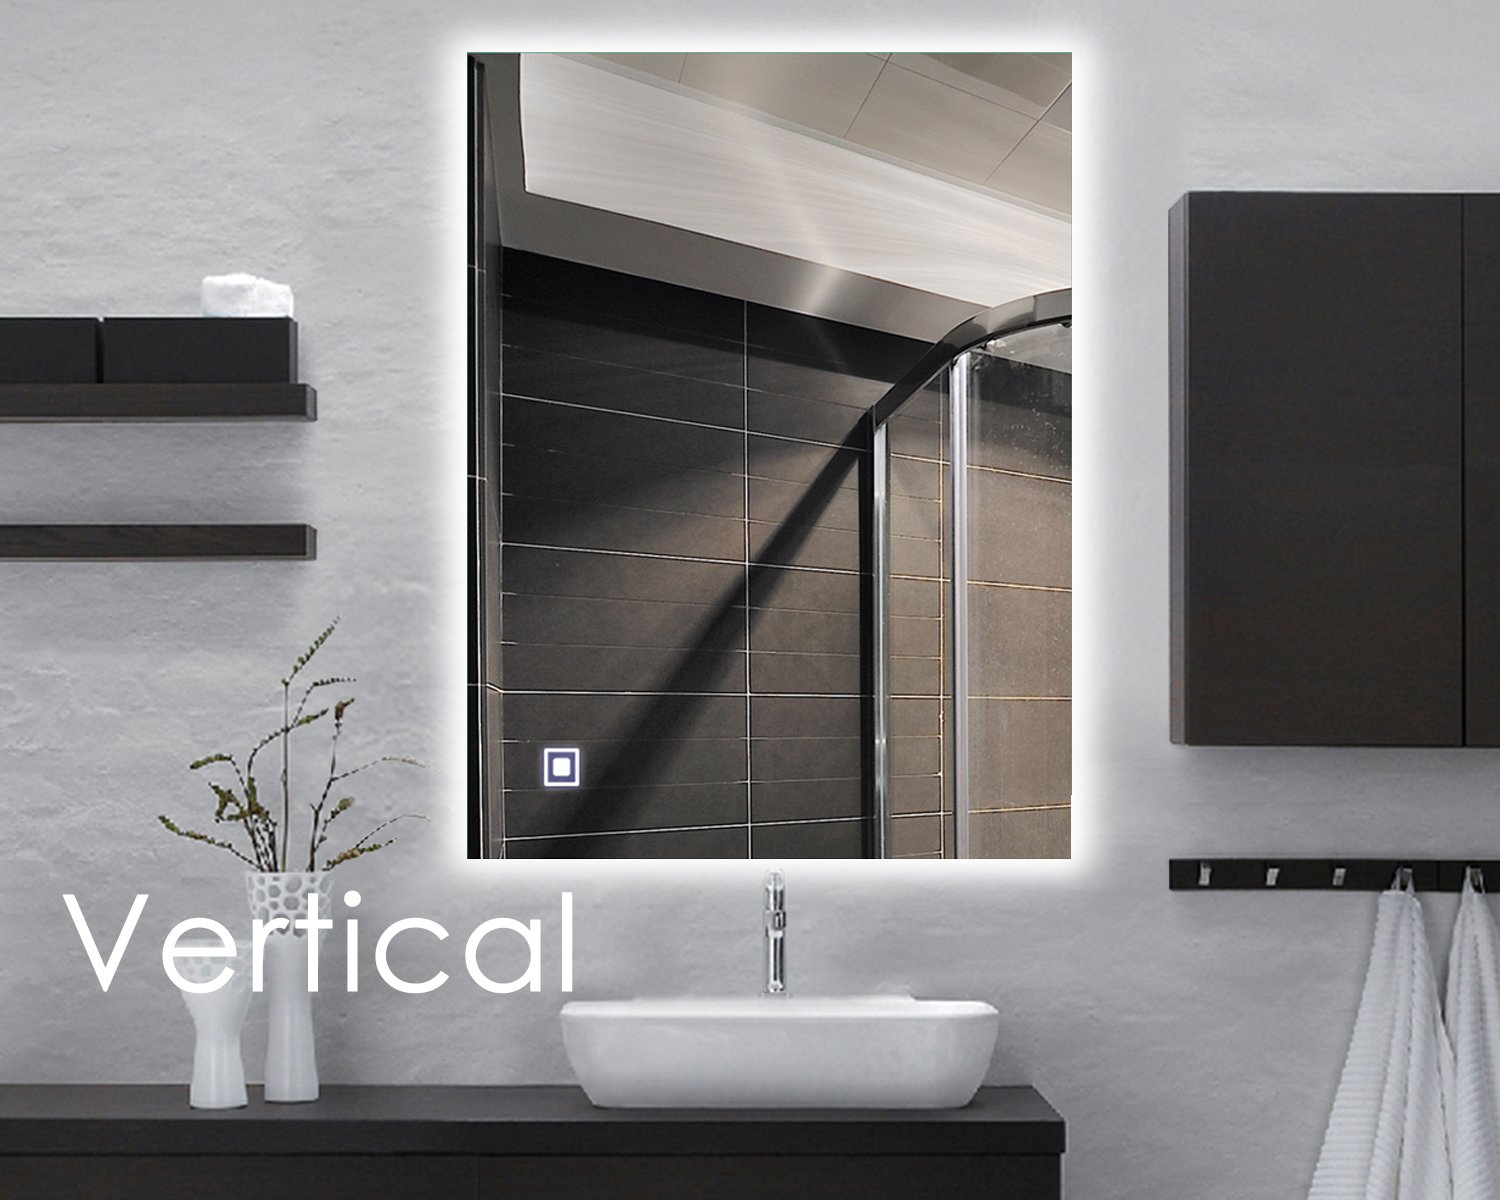 LED Wall Mounted Backlit Mirror, Bathroom Vanity Makeup Mirror–Dimmable, Anti Fog, Touch Screen and 90+ CRI (36''x28'') by Hans& Alice